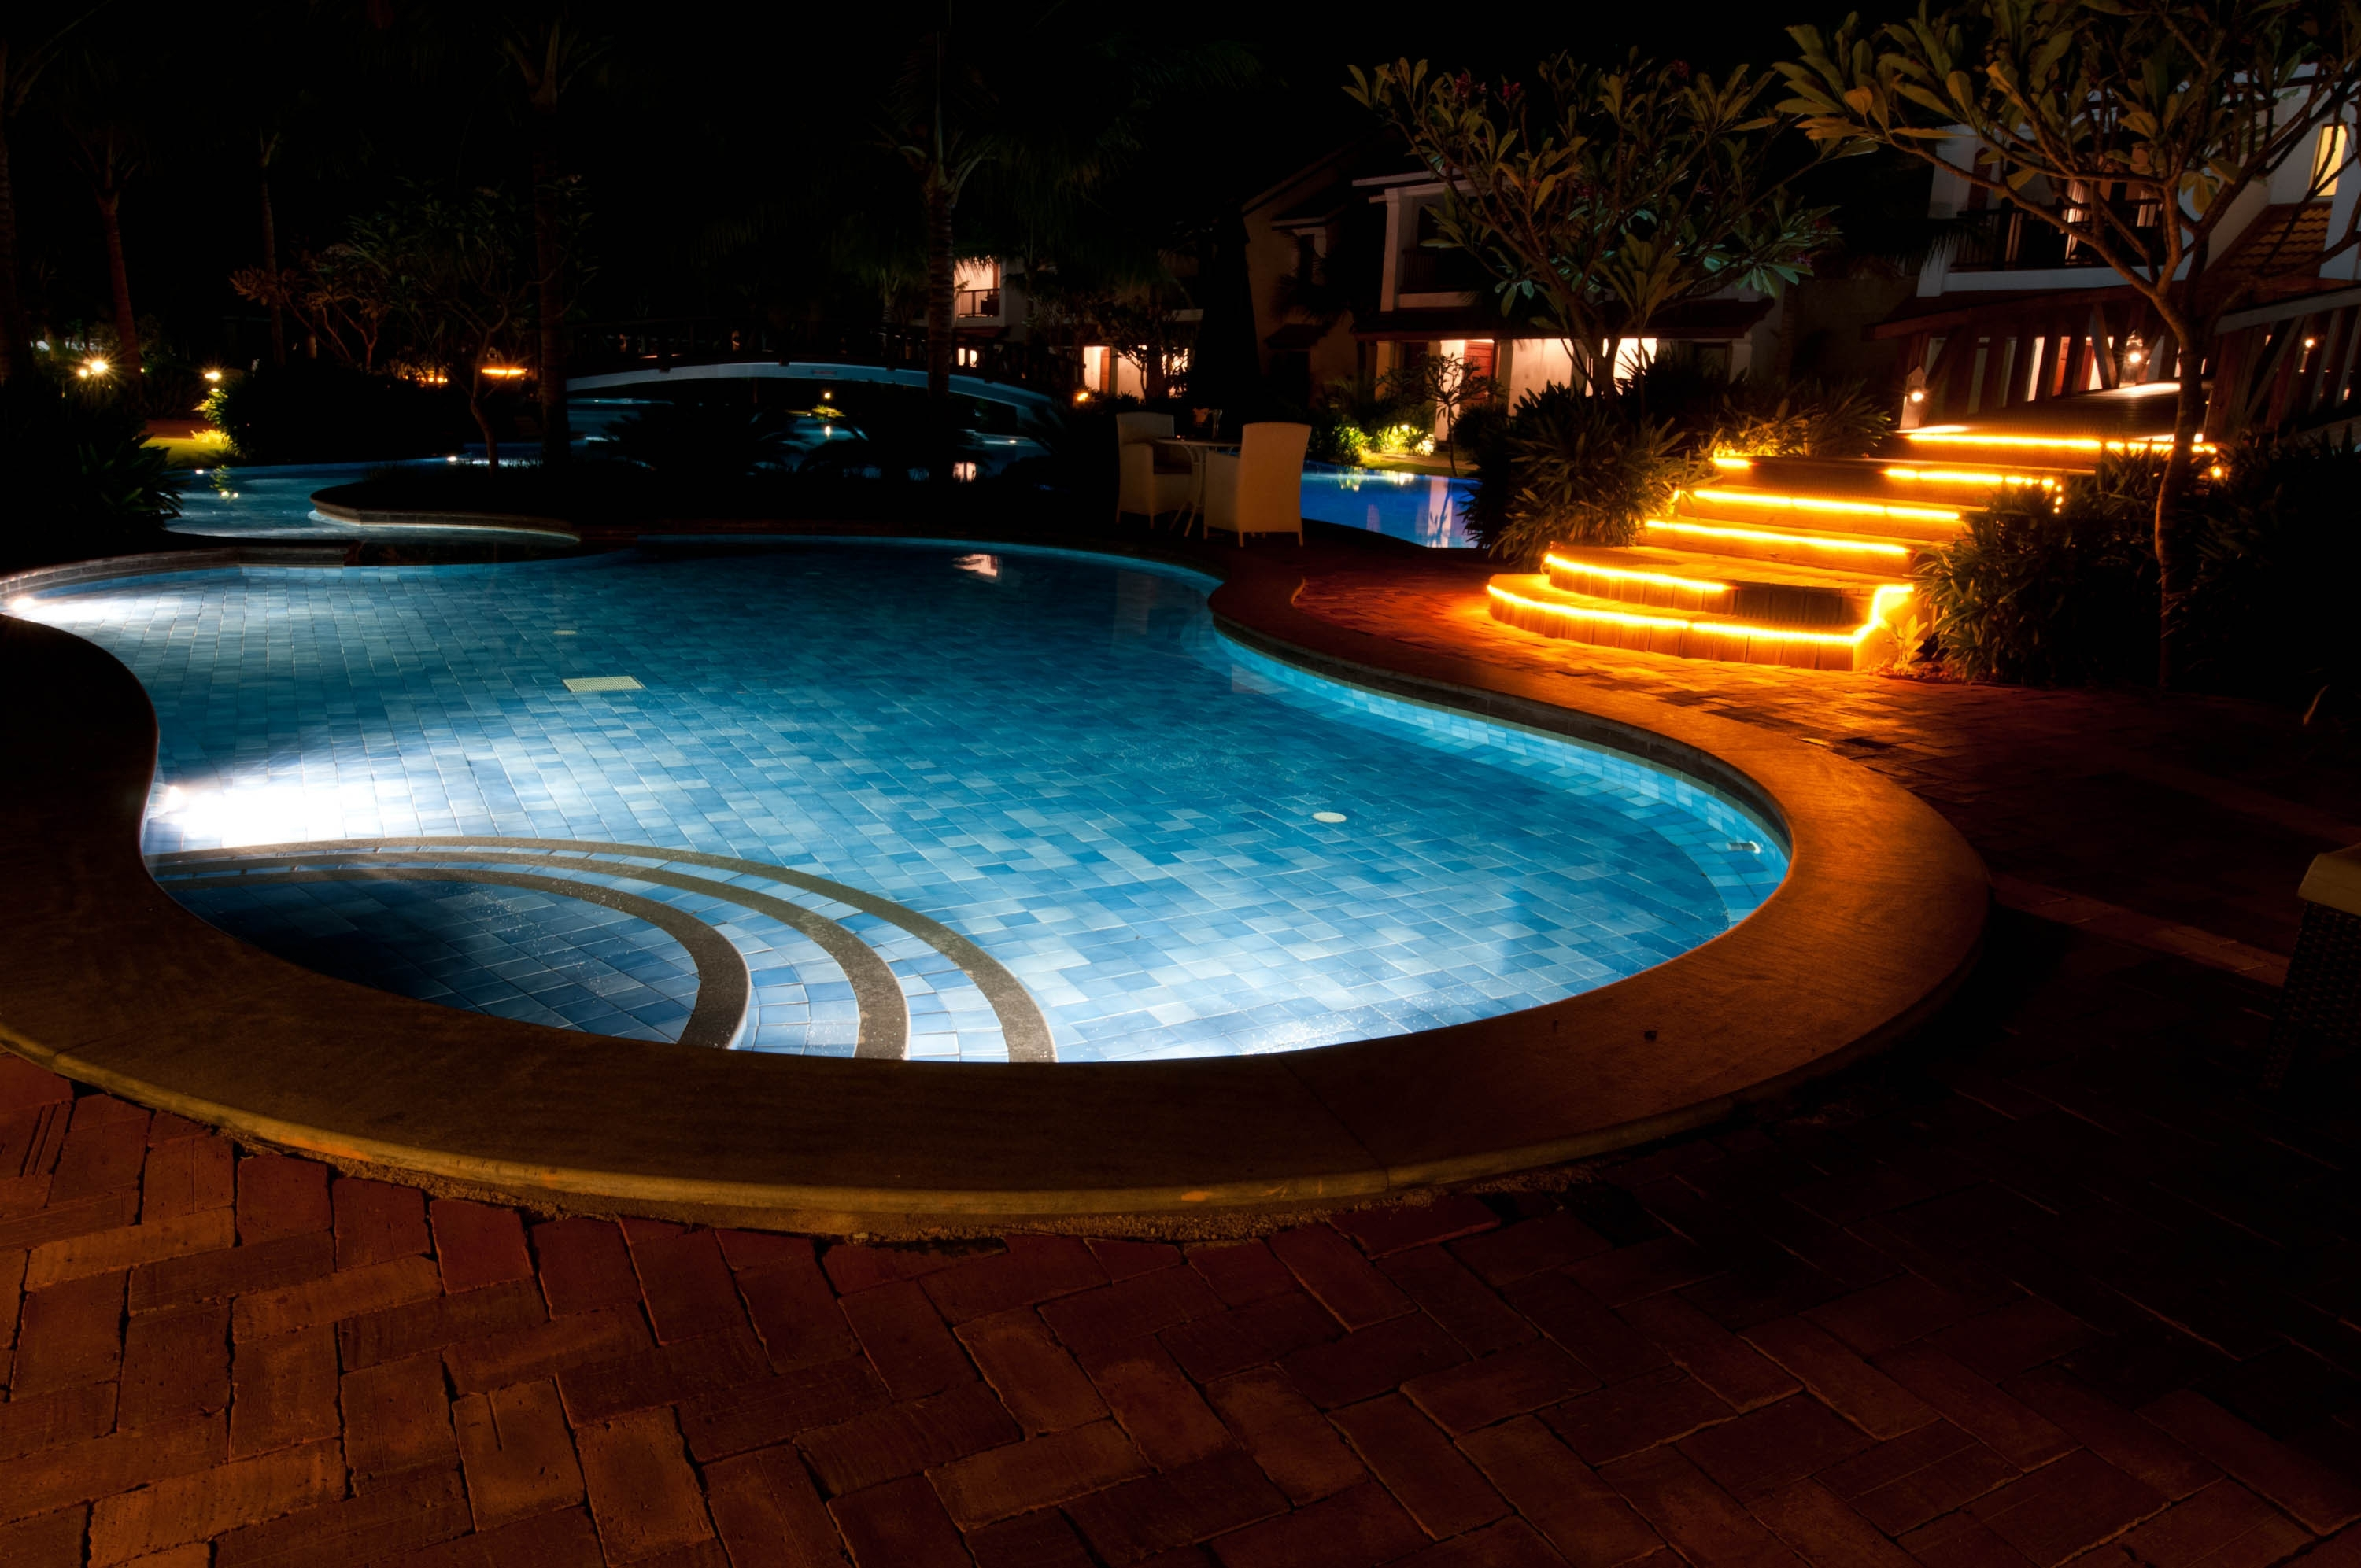 Outdoor Lighting Trends For Long Winter Nights - Cypress Custom Pools intended for Outdoor Lanterns For Poolside (Image 16 of 20)